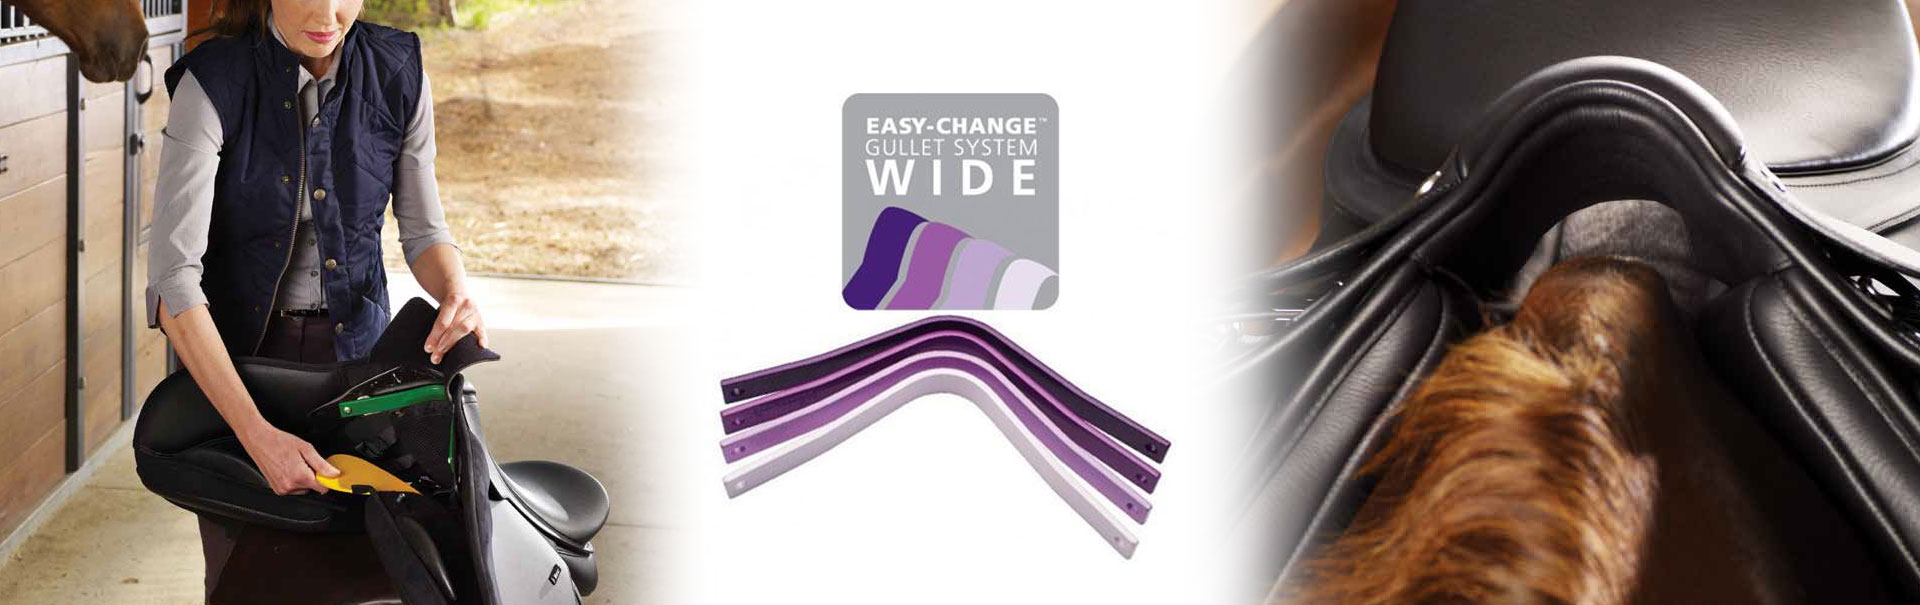 Easy-Change WIDE Gullet System